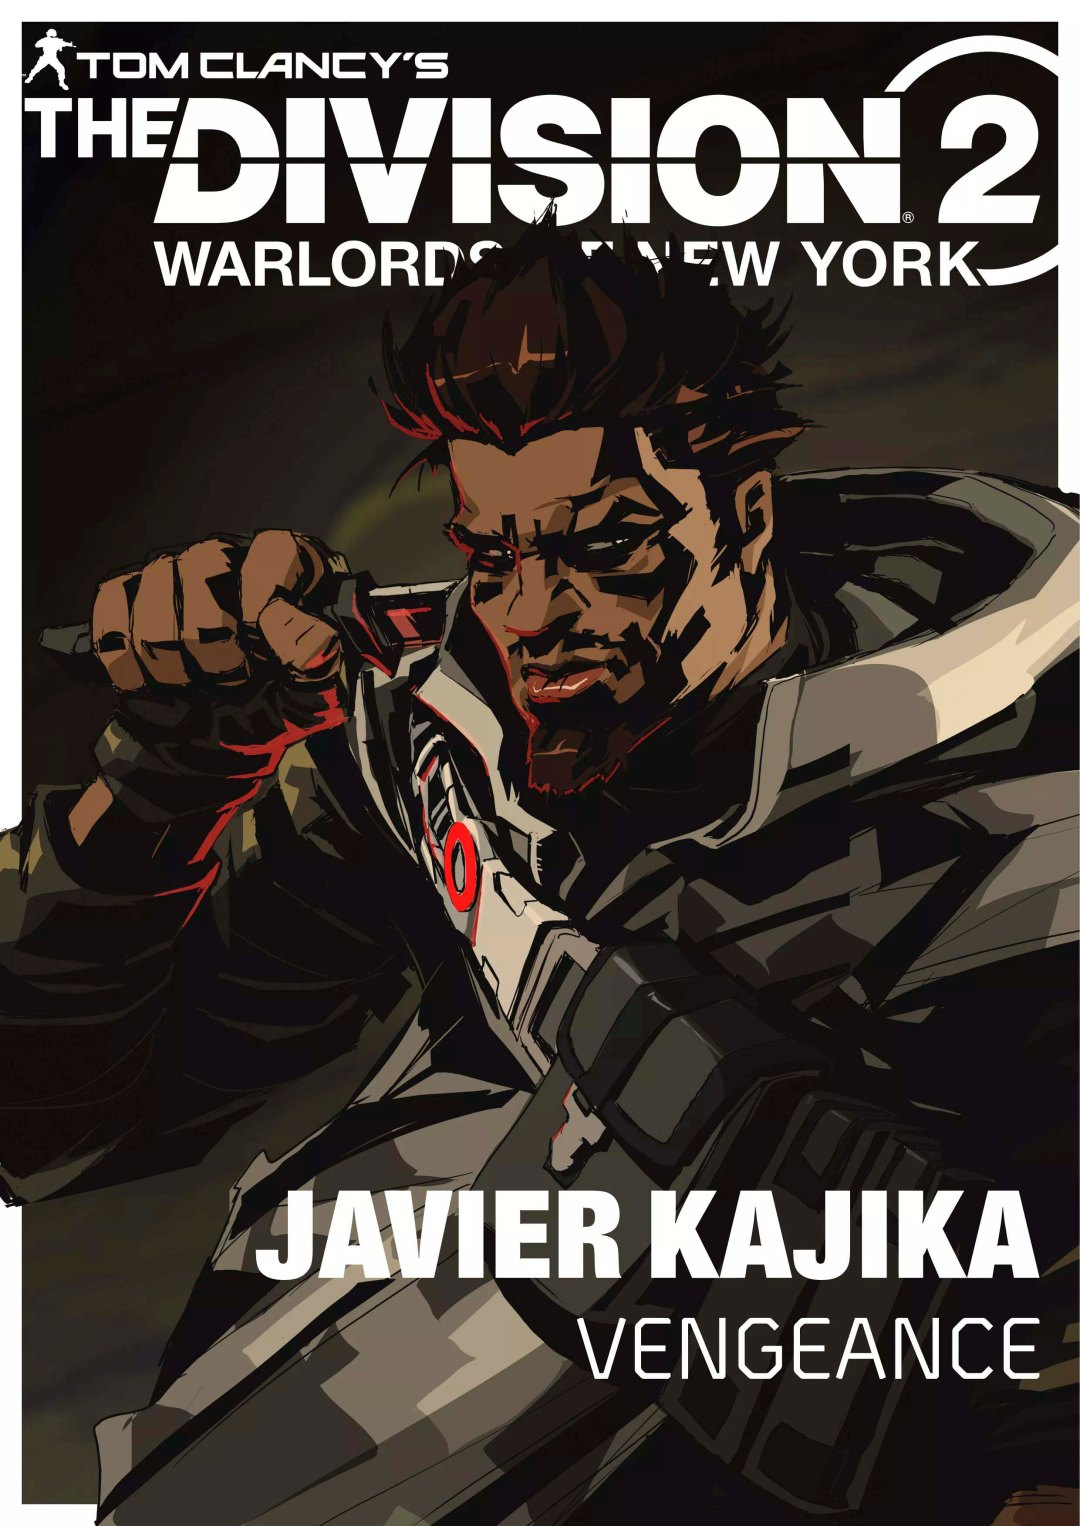 Warlords of New York Characters